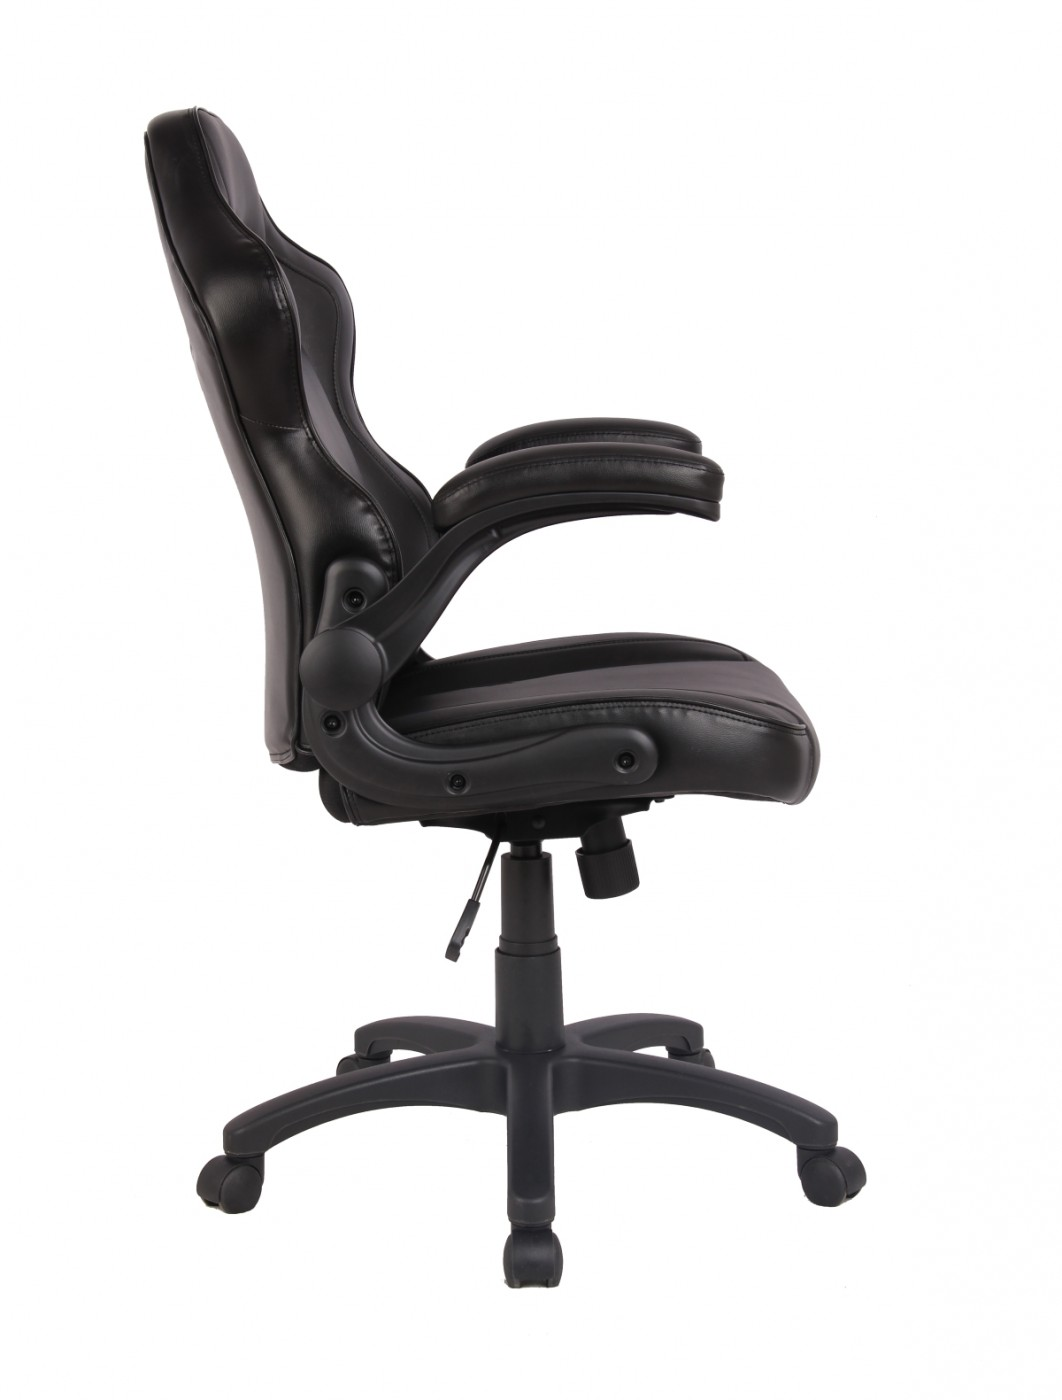 Gaming Chairs - Eliza Tinsley Predator Executive Office Chairs BCP/H600/BK